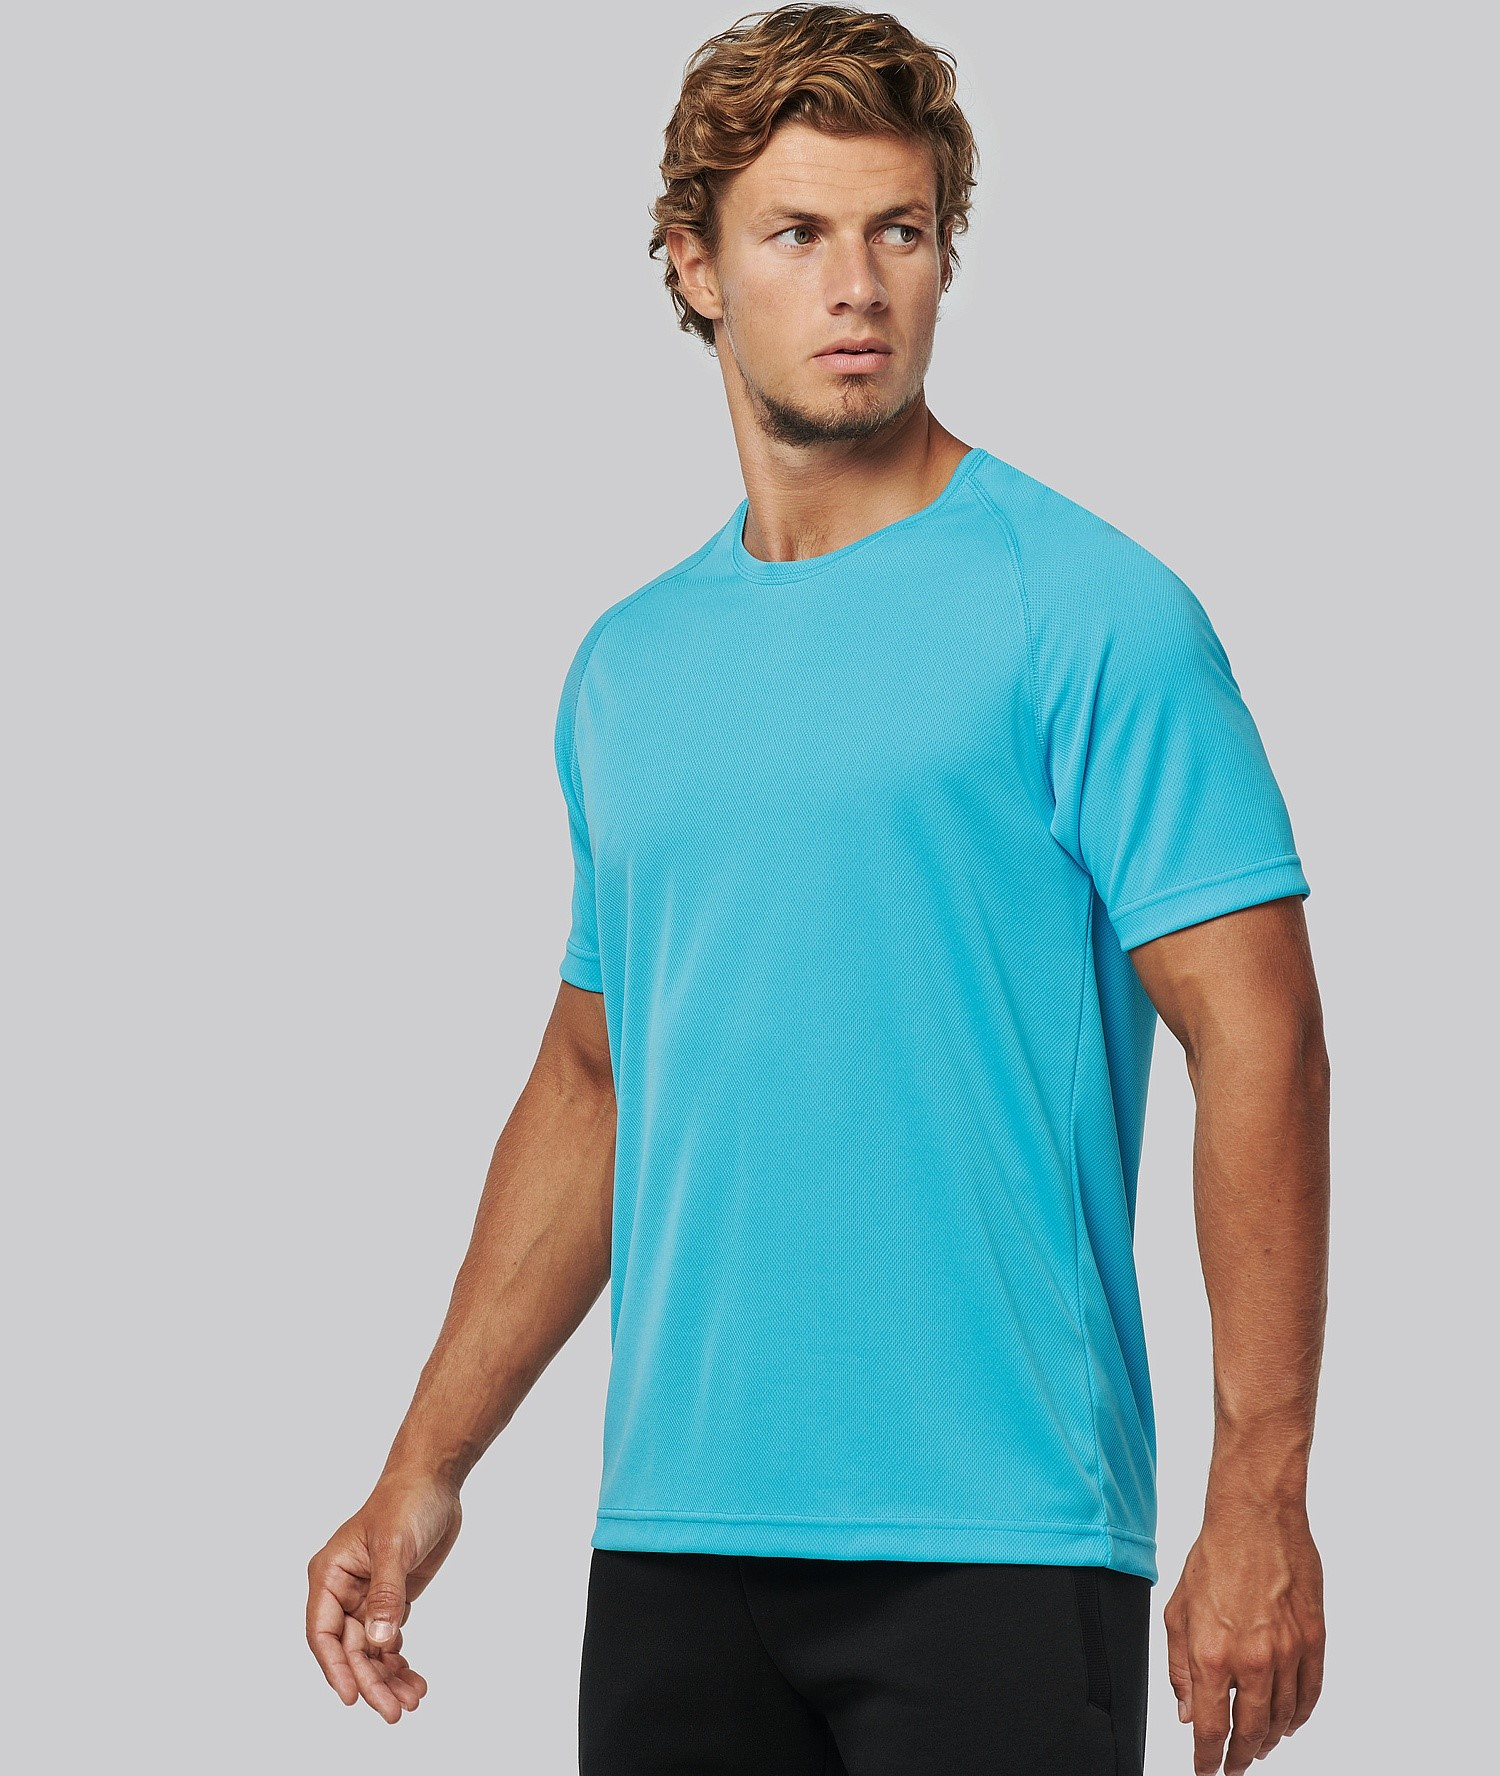 PROACT MENS SHORT SLEEVE SPORTS T-SHIRT